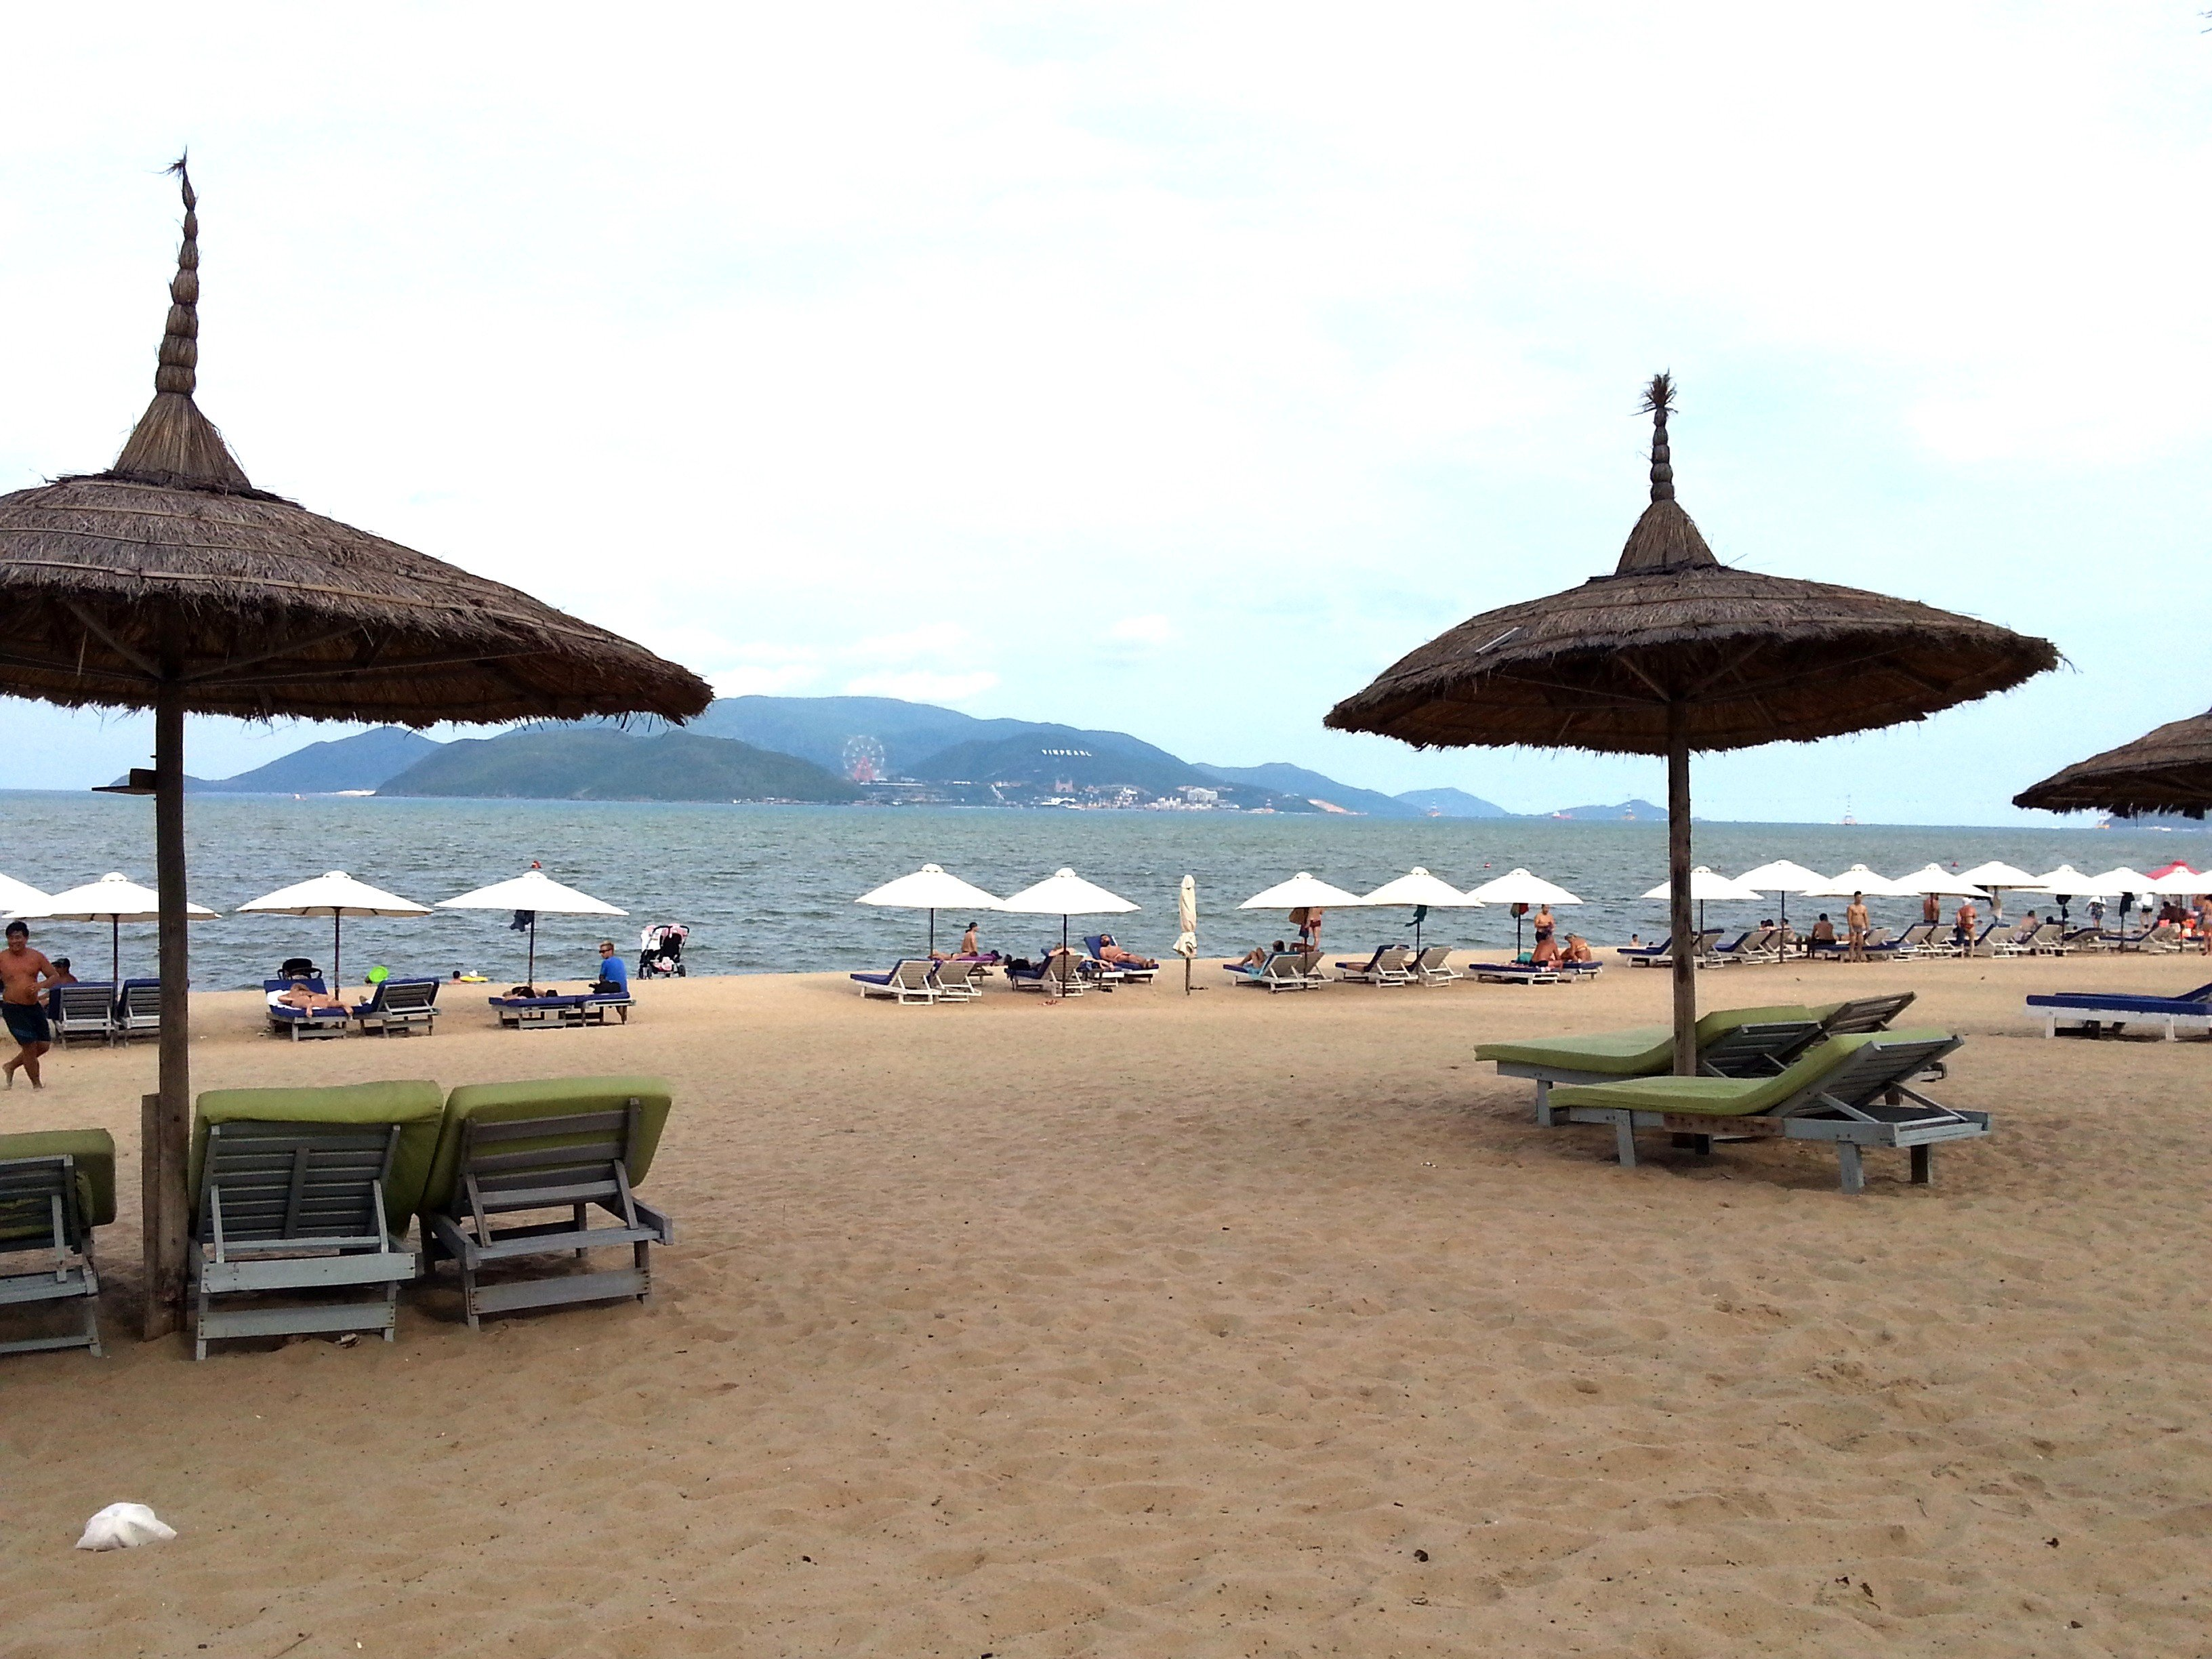 Sunbeds for rent on Nha Trang Beach